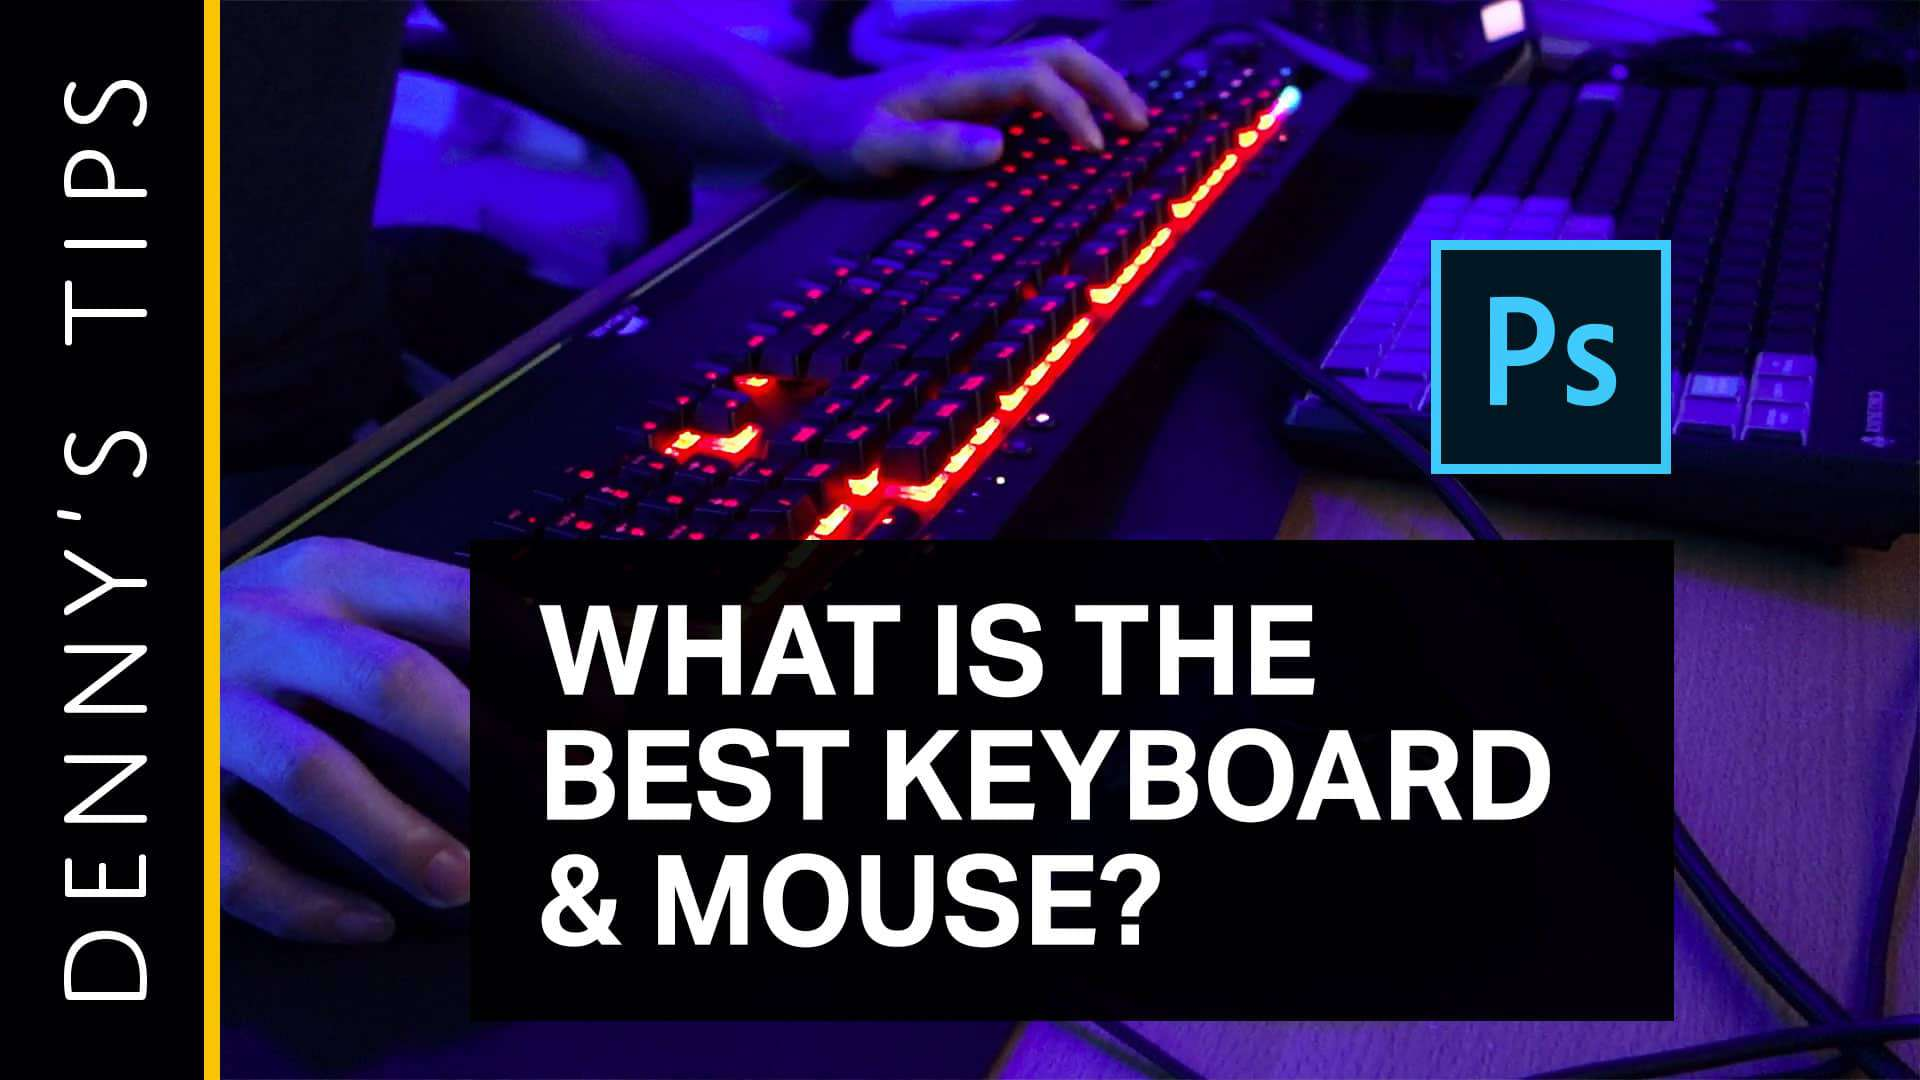 The Best Keyboard and Mouse for Photoshop - Photoshop Tutorials